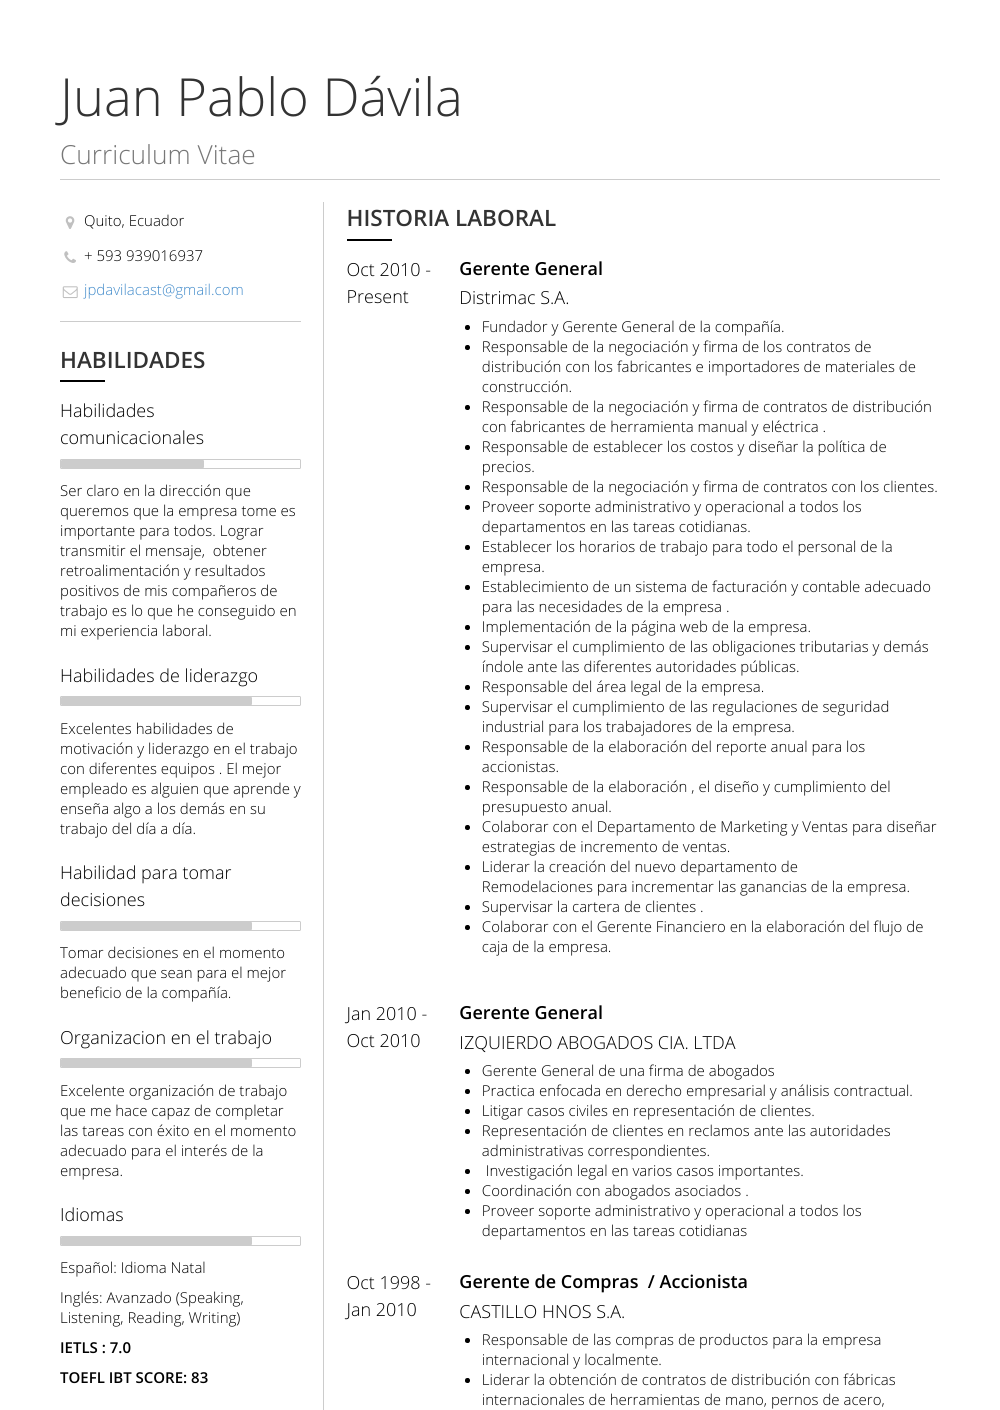 Gerente General Resume Samples Templates Visualcv